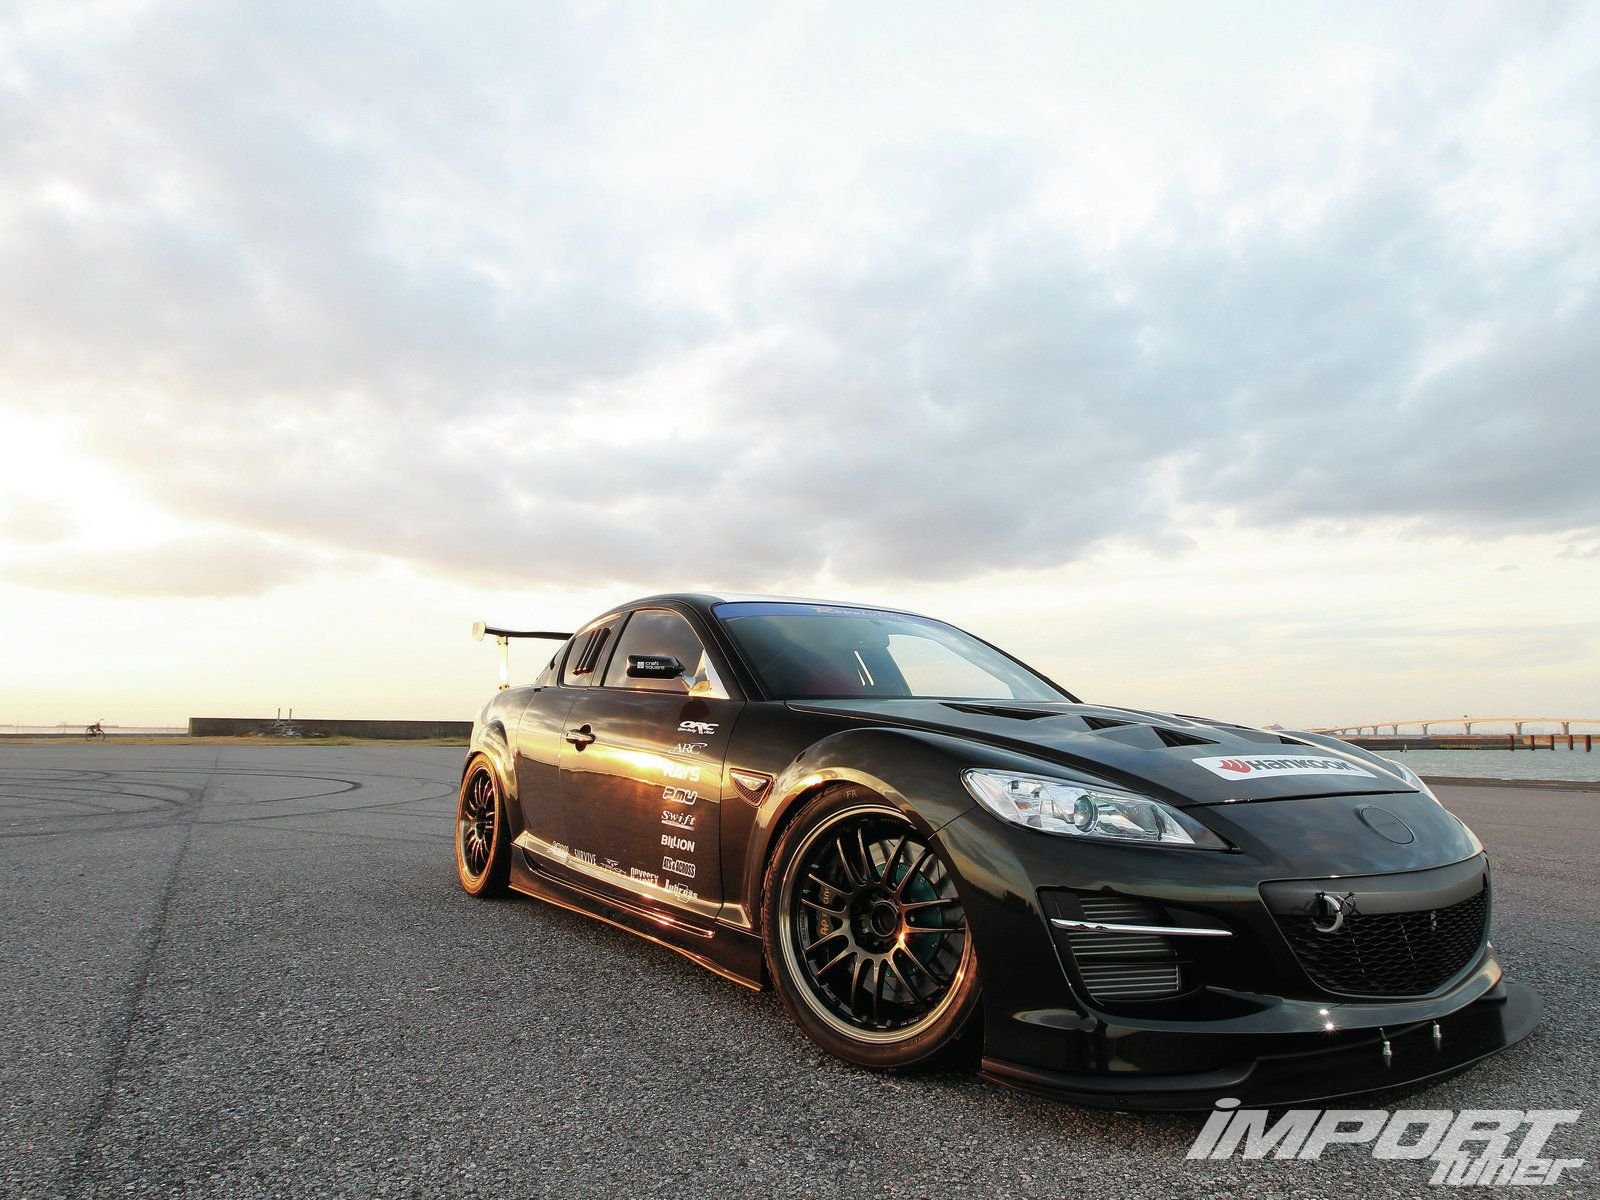 mazda rx8 coupe tuning japan body kit cars wallpaper 1600x1200 498782 wallpaperup. Black Bedroom Furniture Sets. Home Design Ideas